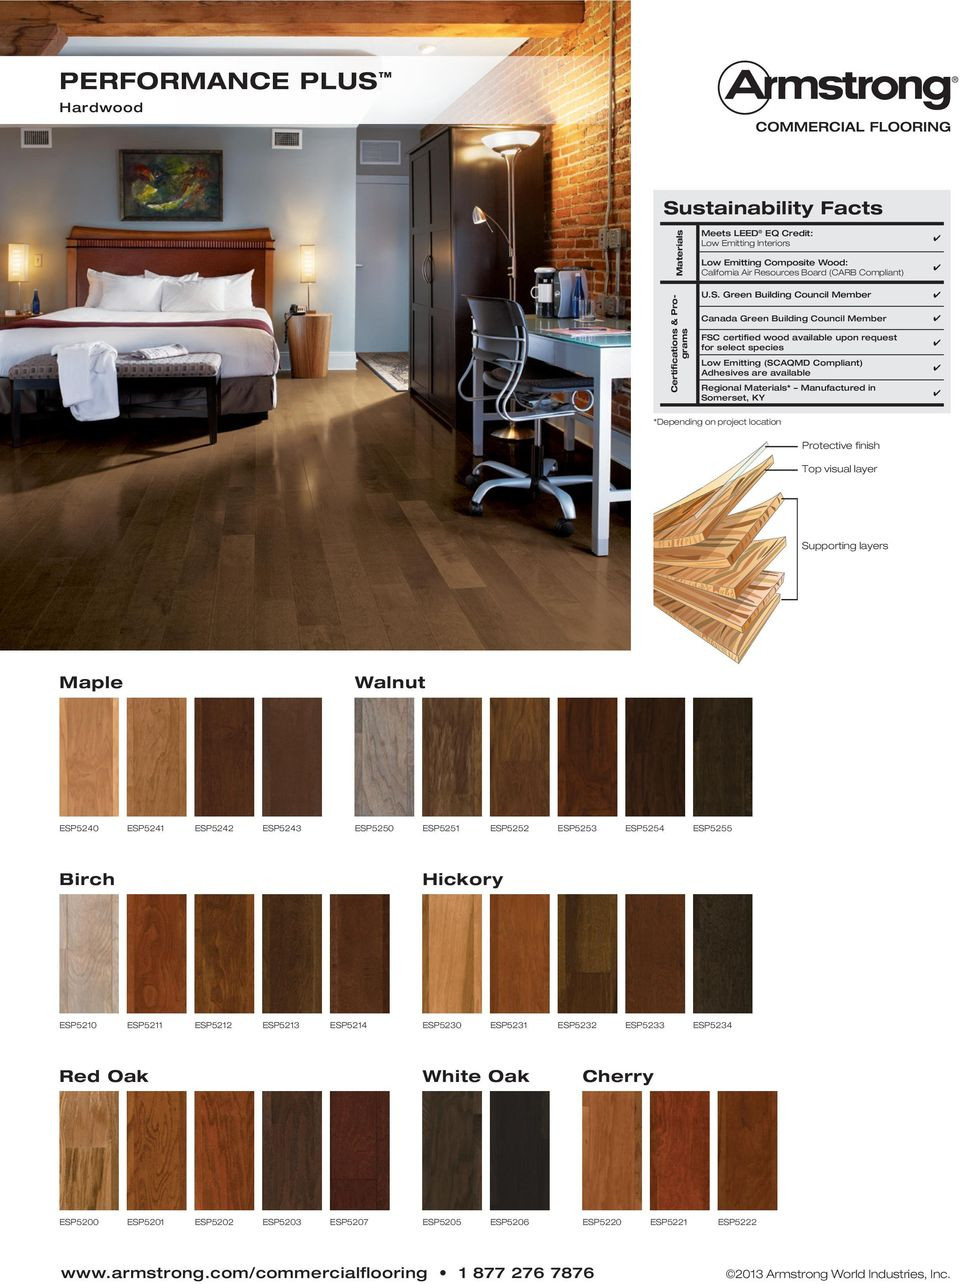 bruce glue down hardwood floors of performance plus installation maintenance tip sheet pdf with regard to green building council member canada green building council member fsc certified wood available upon request for